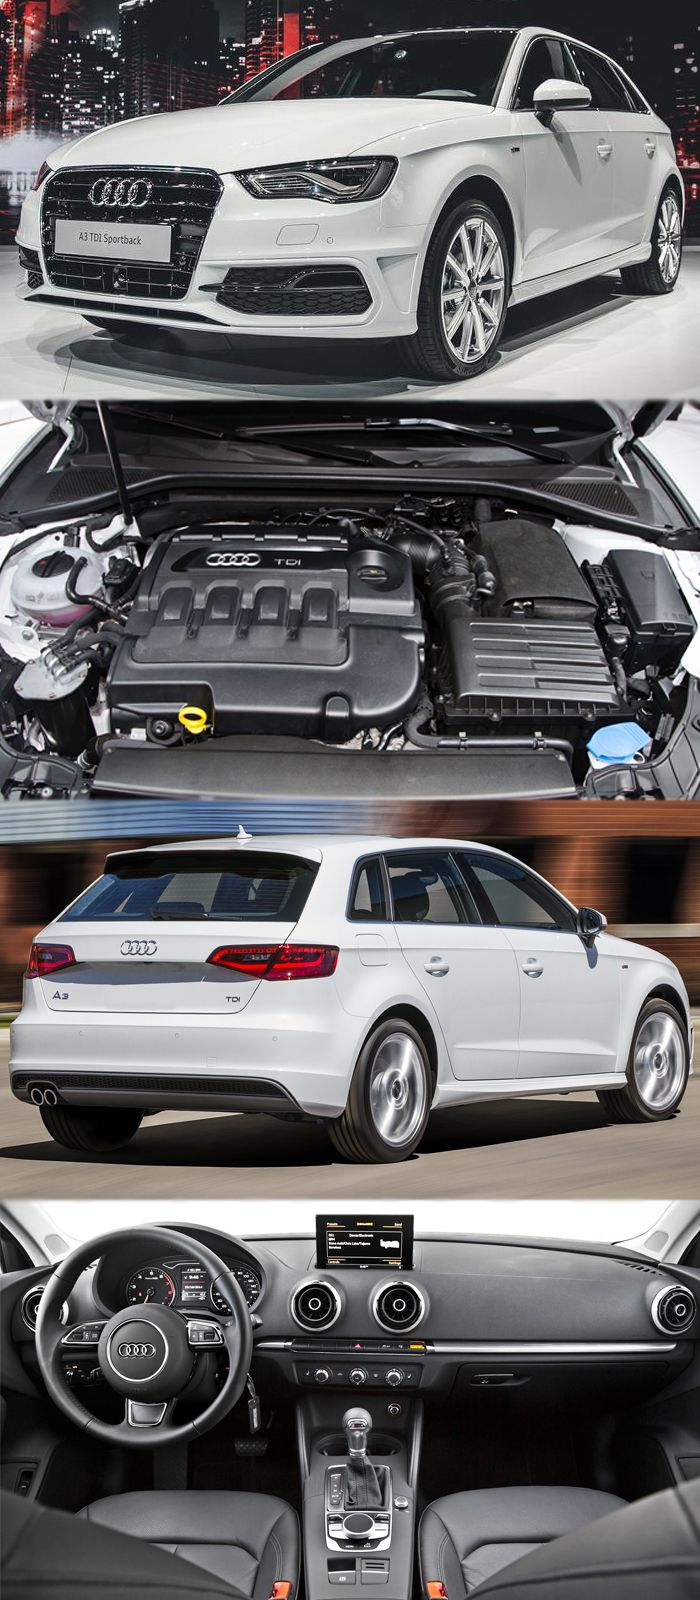 Audi a3 diesel engine at its best get more details at https